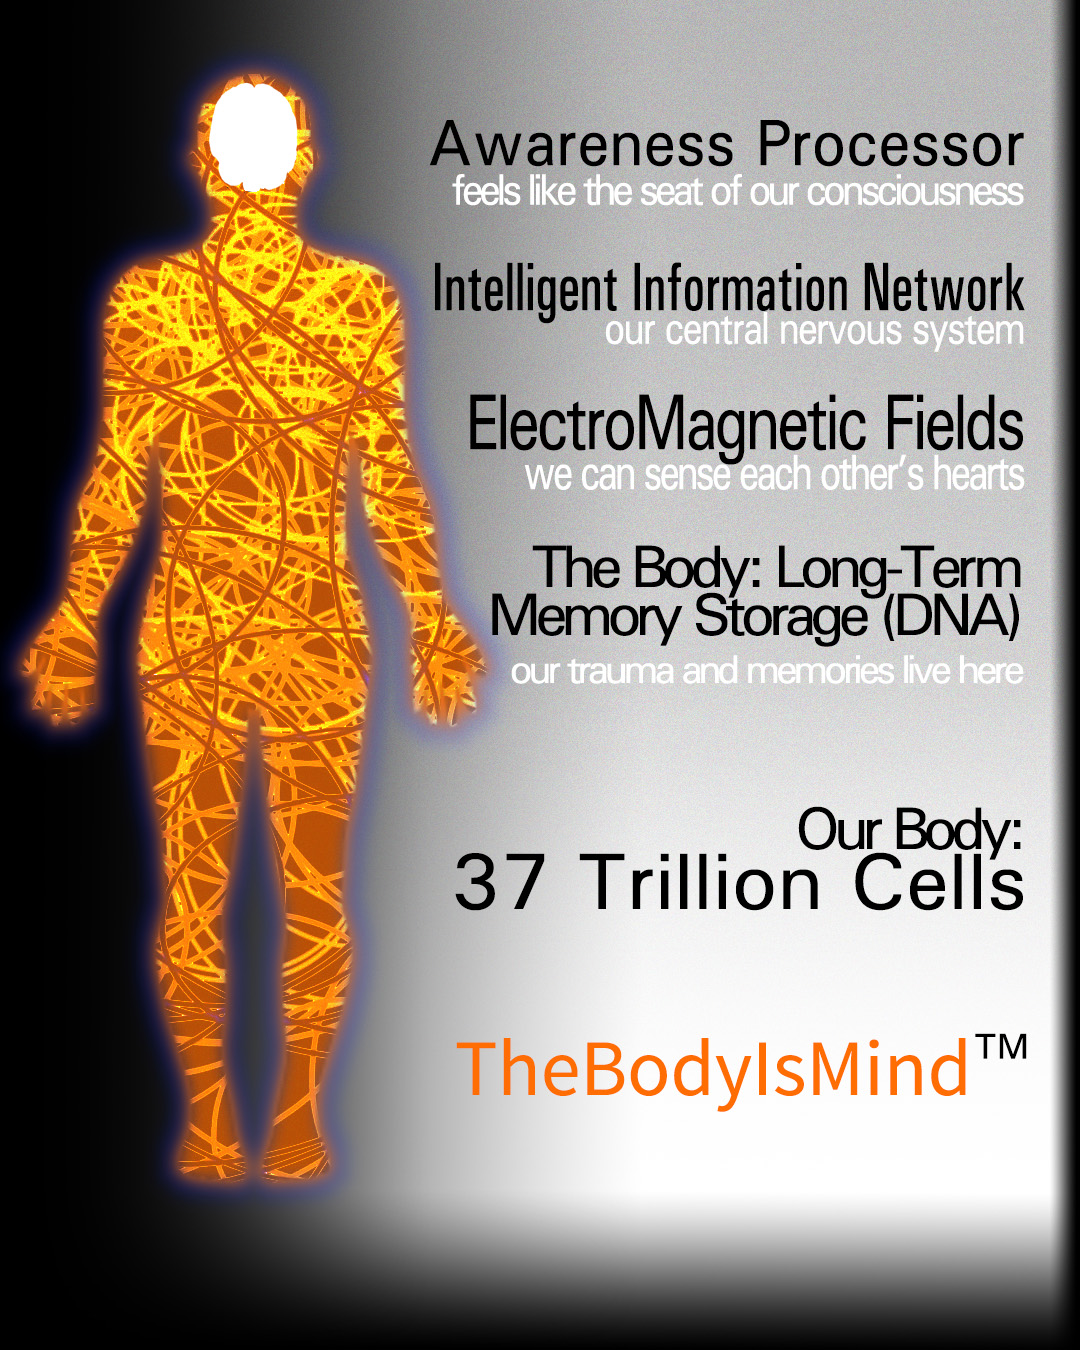 Our body averages 37 Trillion cells